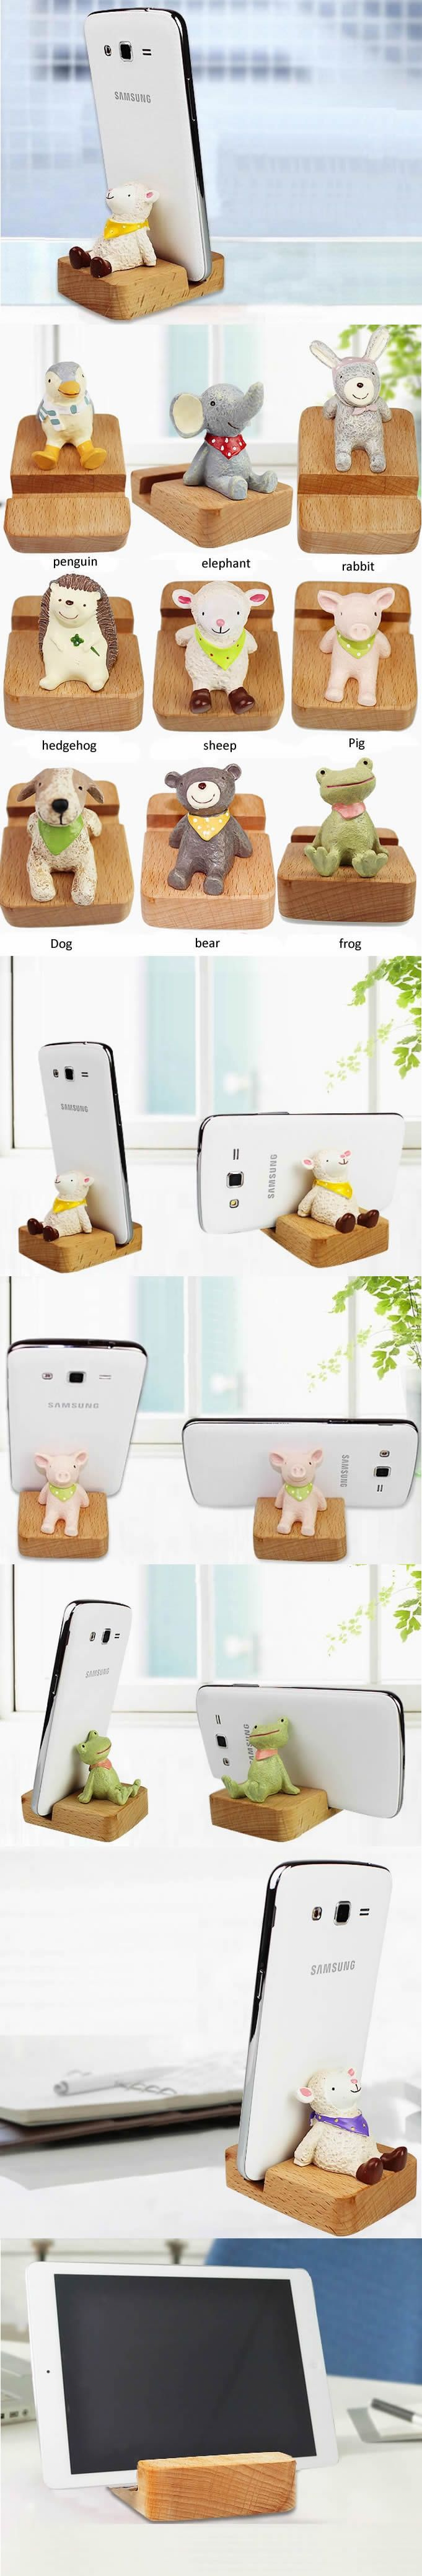 Wooden Desktop IPhone, PDA, SmartPhone Stand Holder Rack Display With Animal